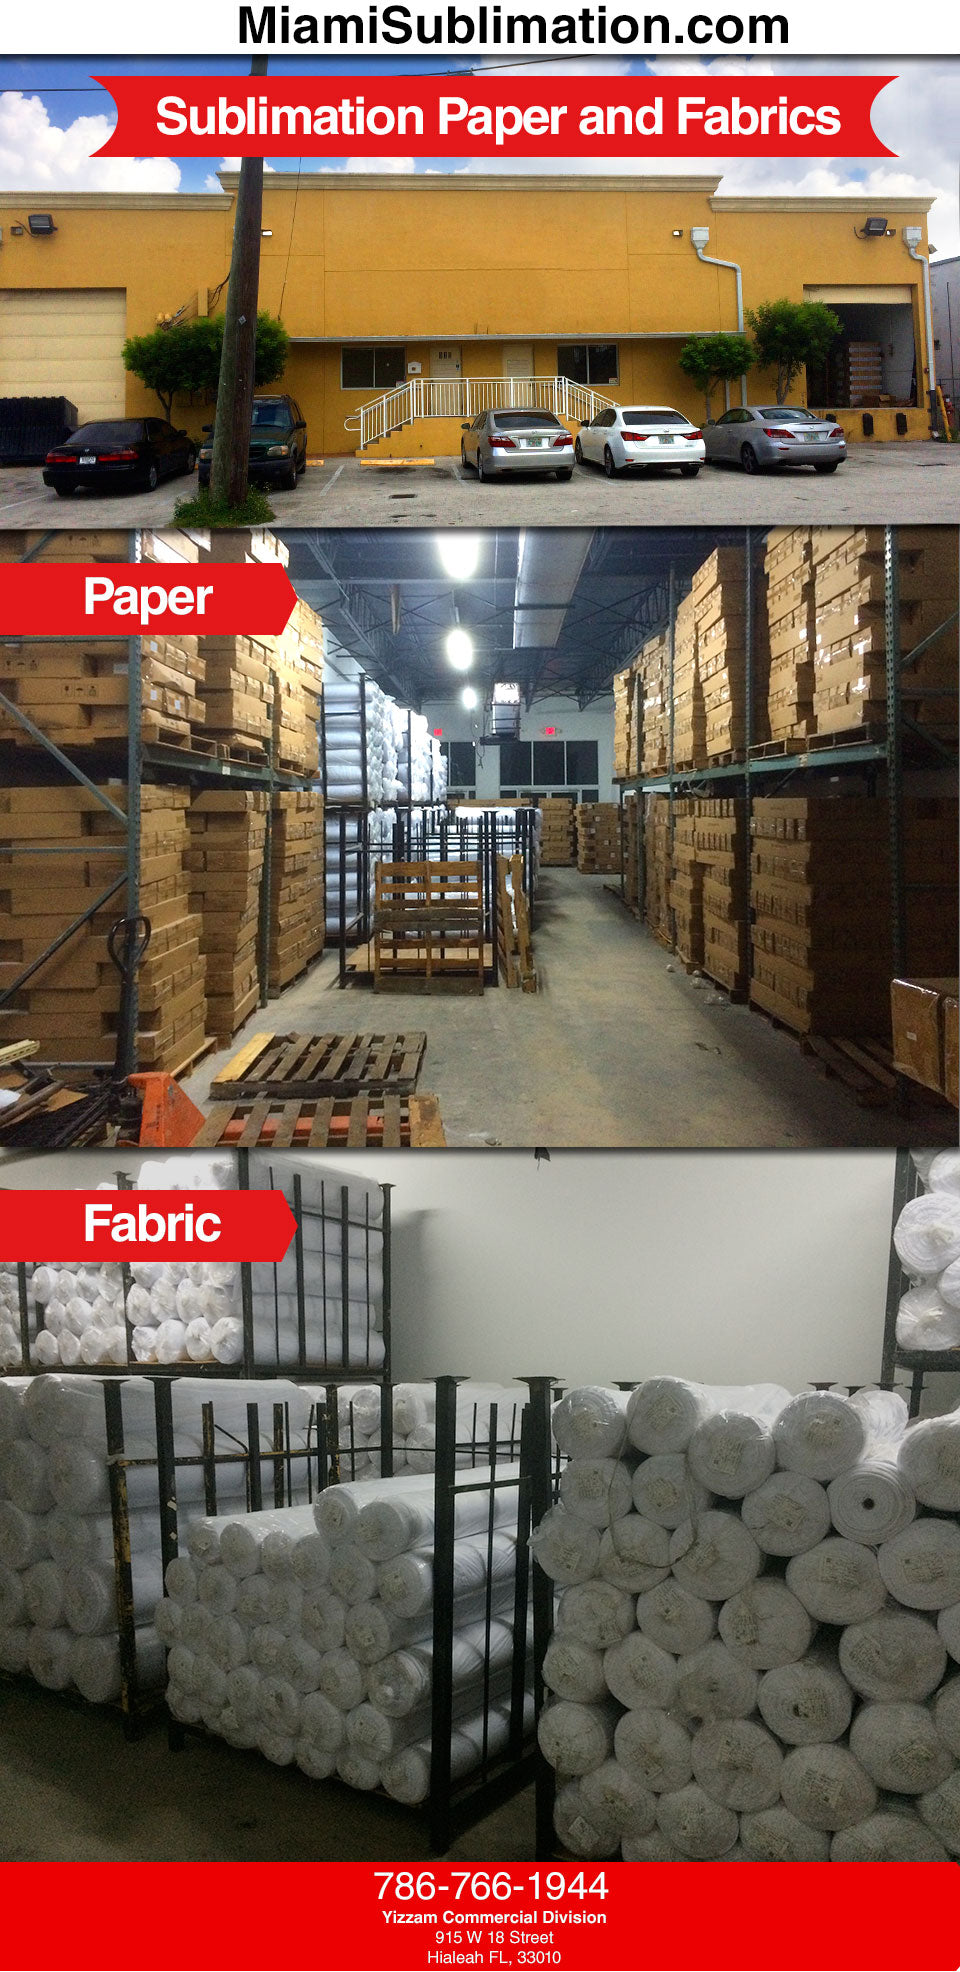 MiamiSublimation com : Sublimation Paper and Fabric Sales